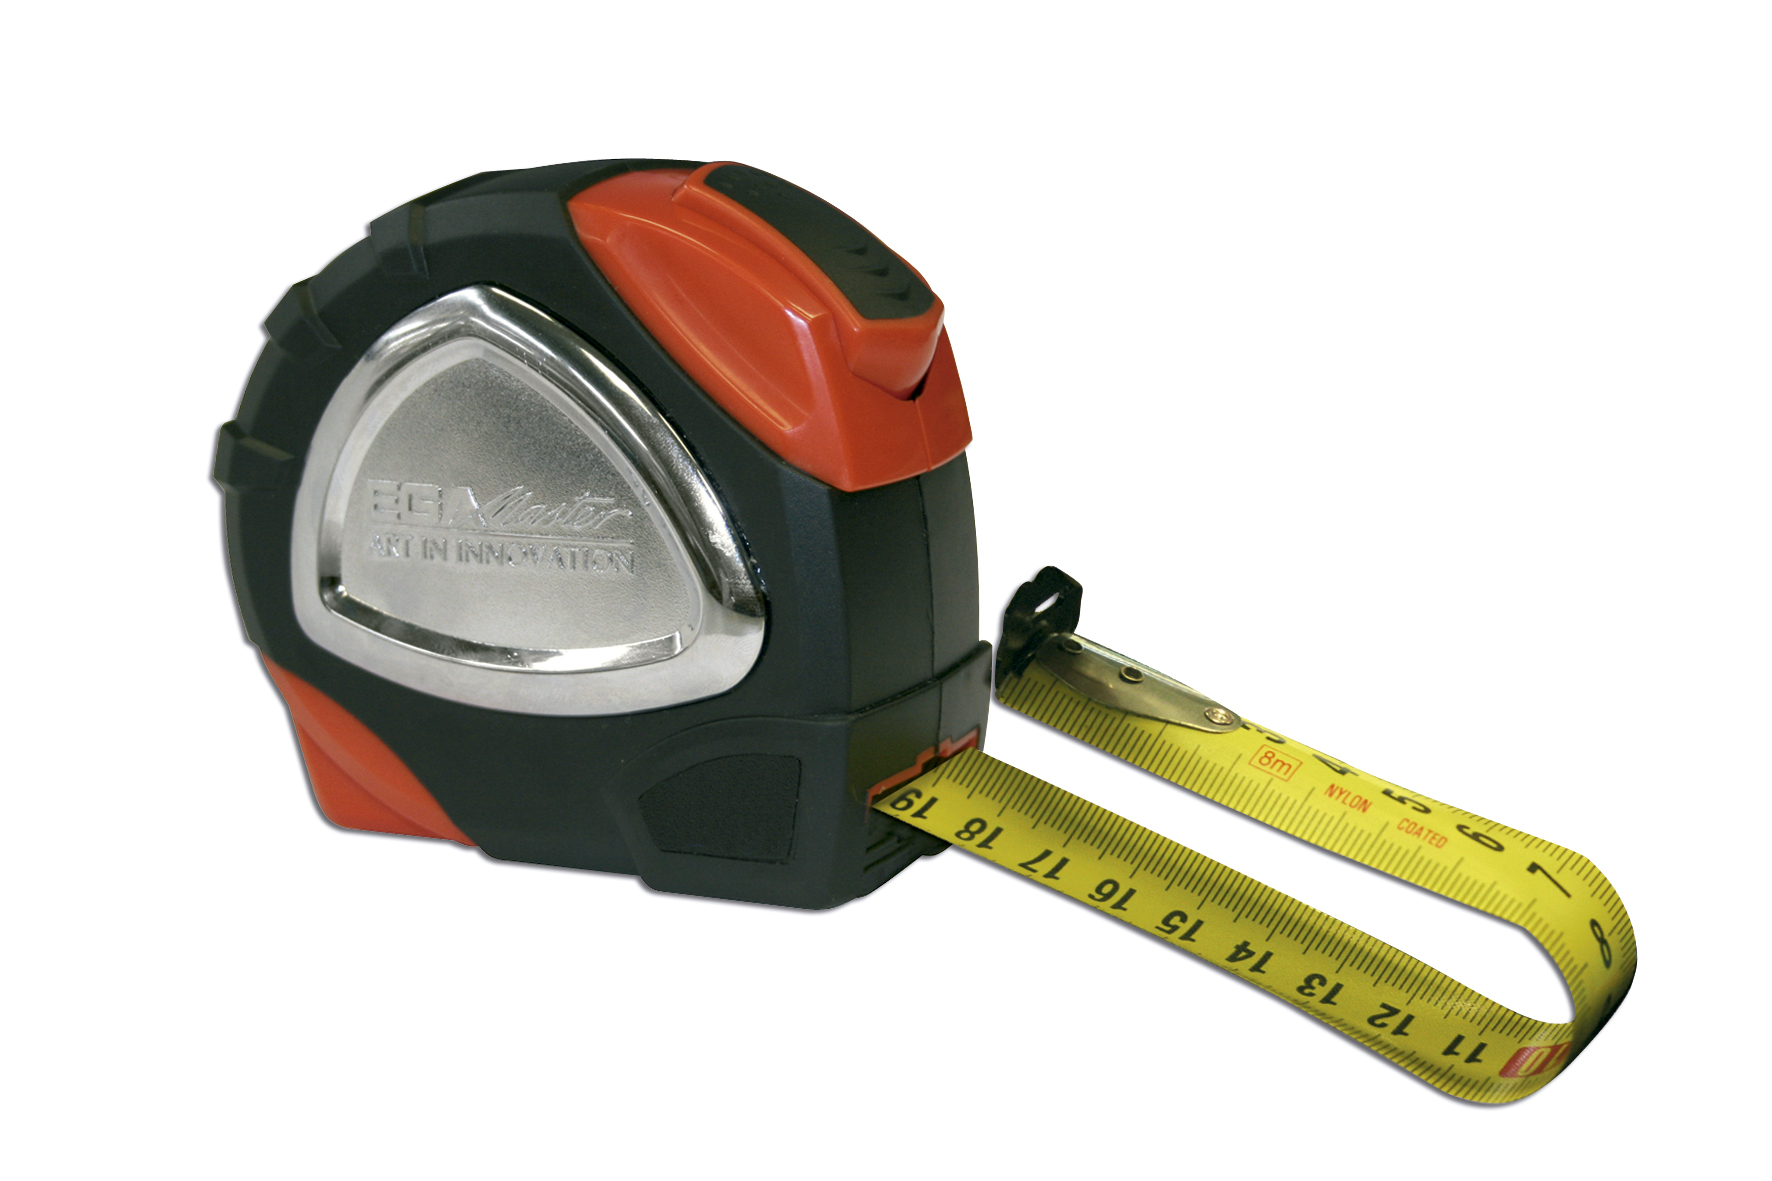 PLATINUM Q MEASURING TAPE